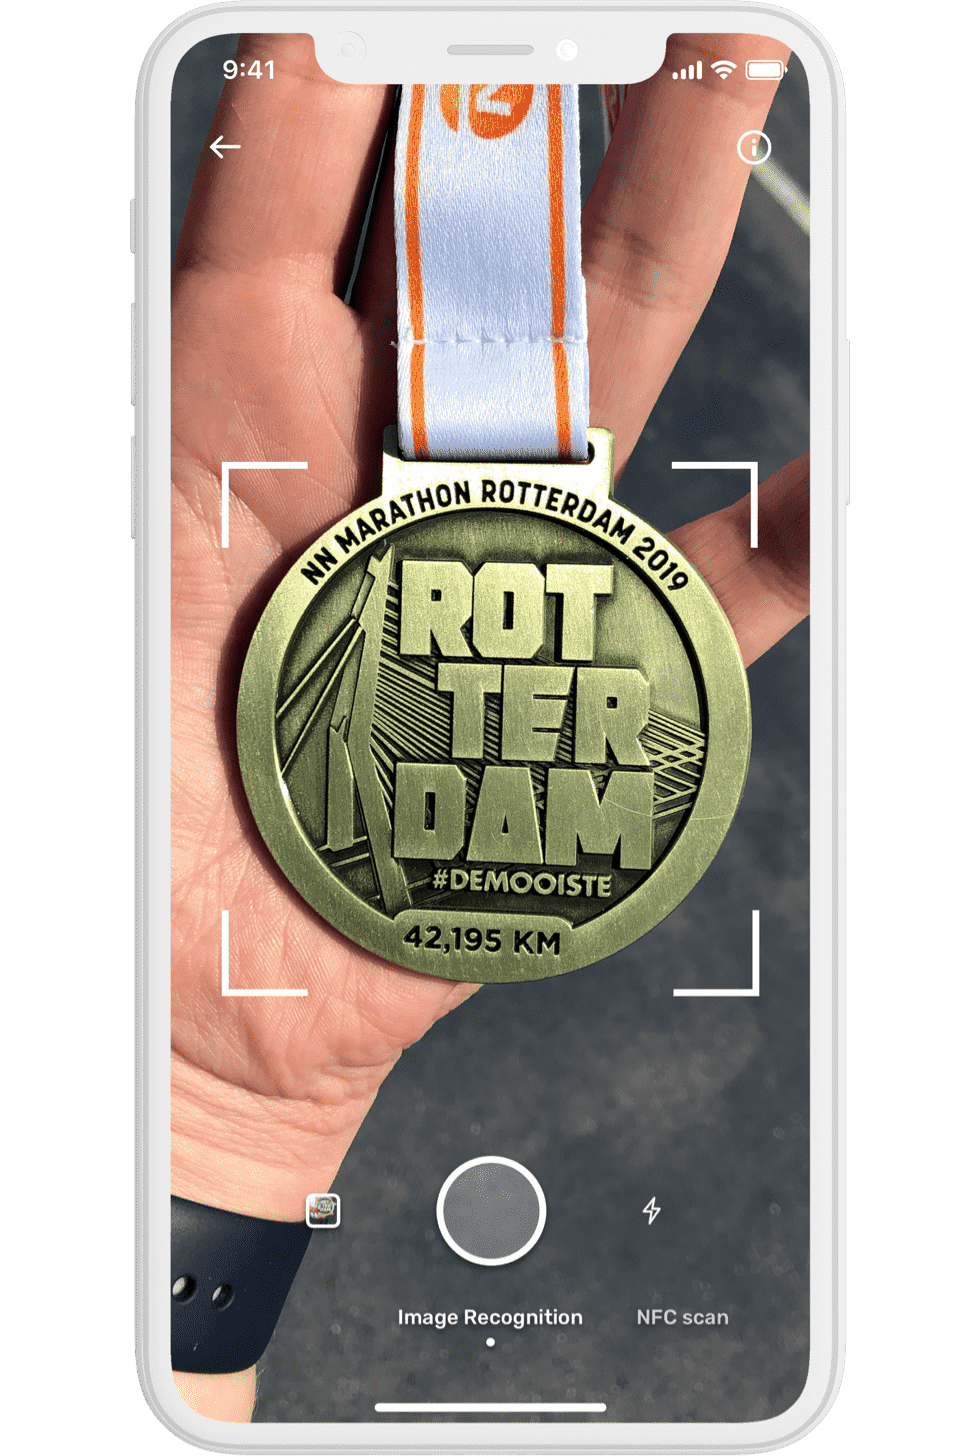 Smart Medal App on phone